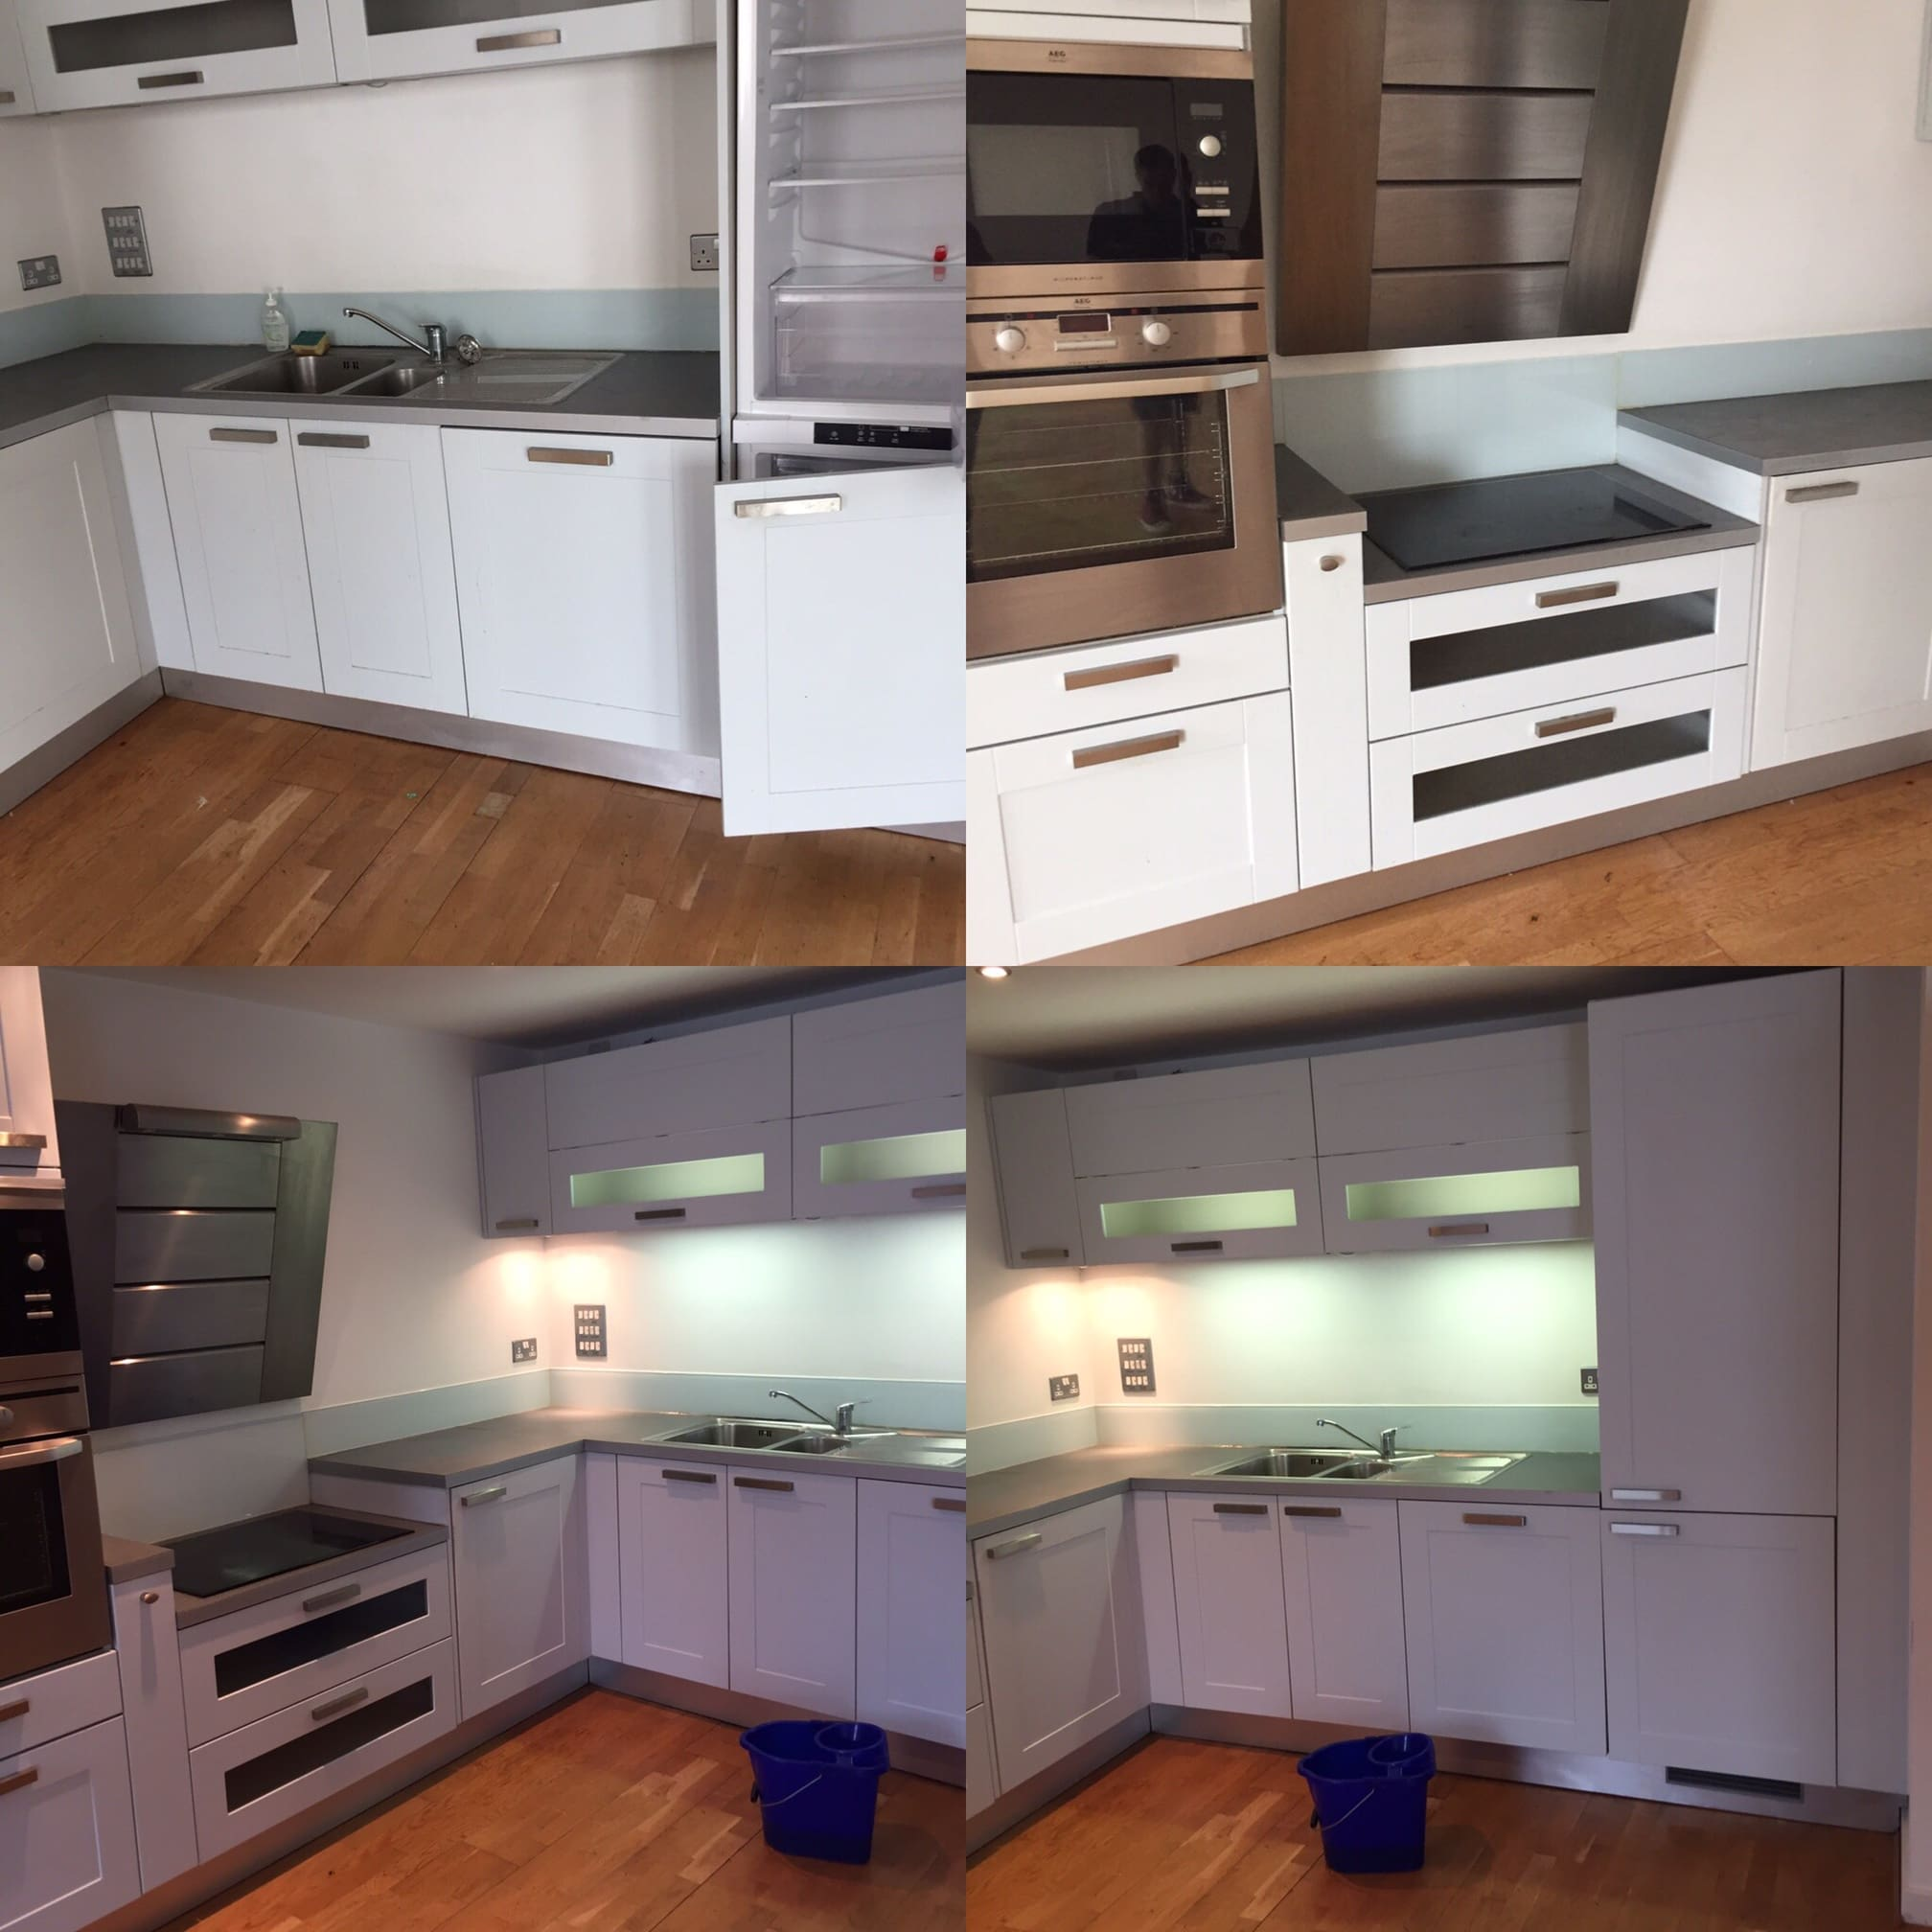 Albright Commercial Cleaning Ltd Hove 07760 767262